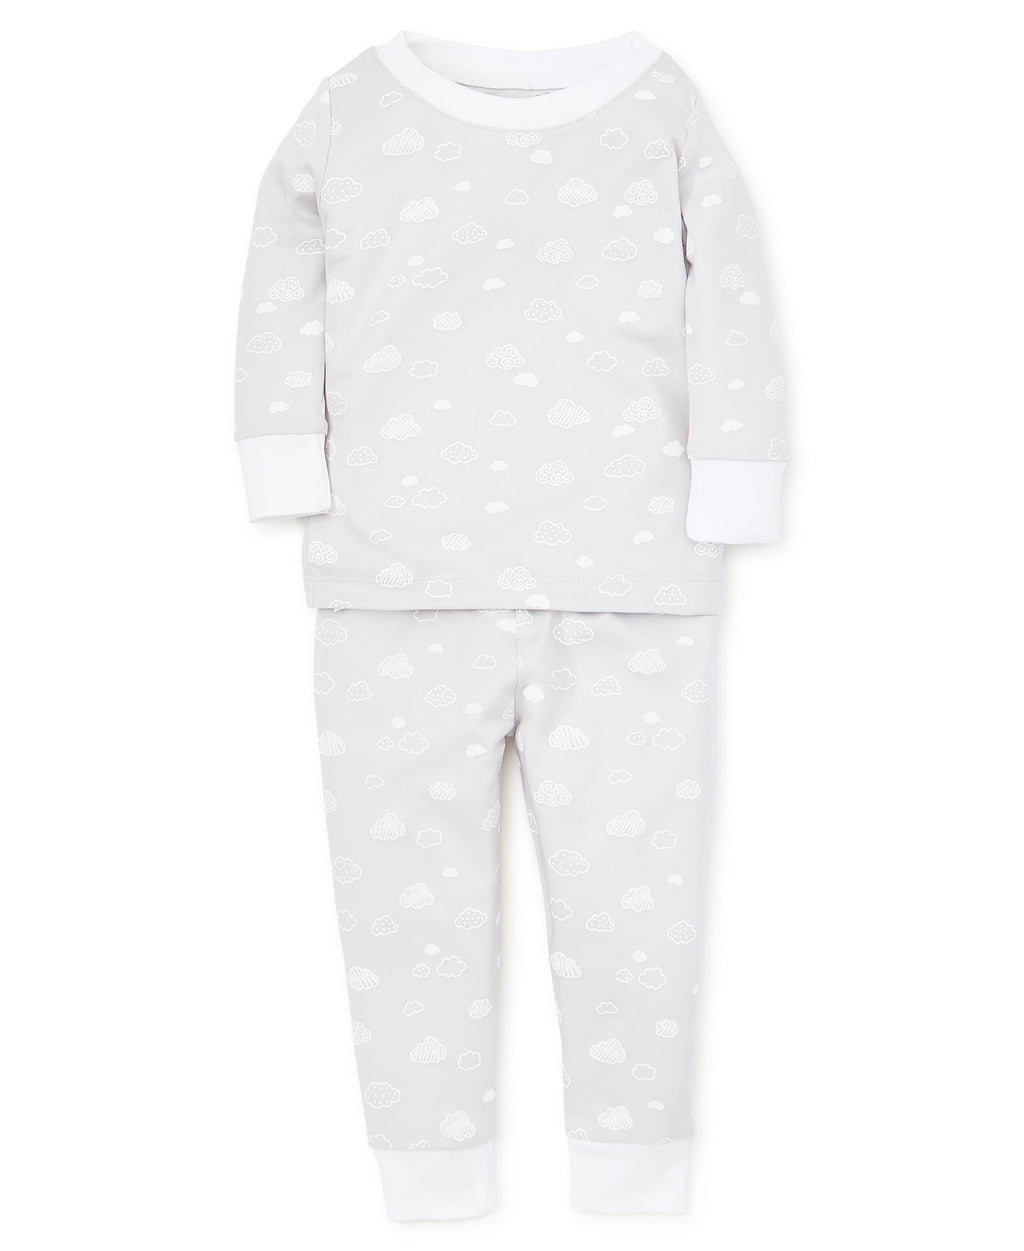 Cotton Clouds Silver Toddler Pajama Set